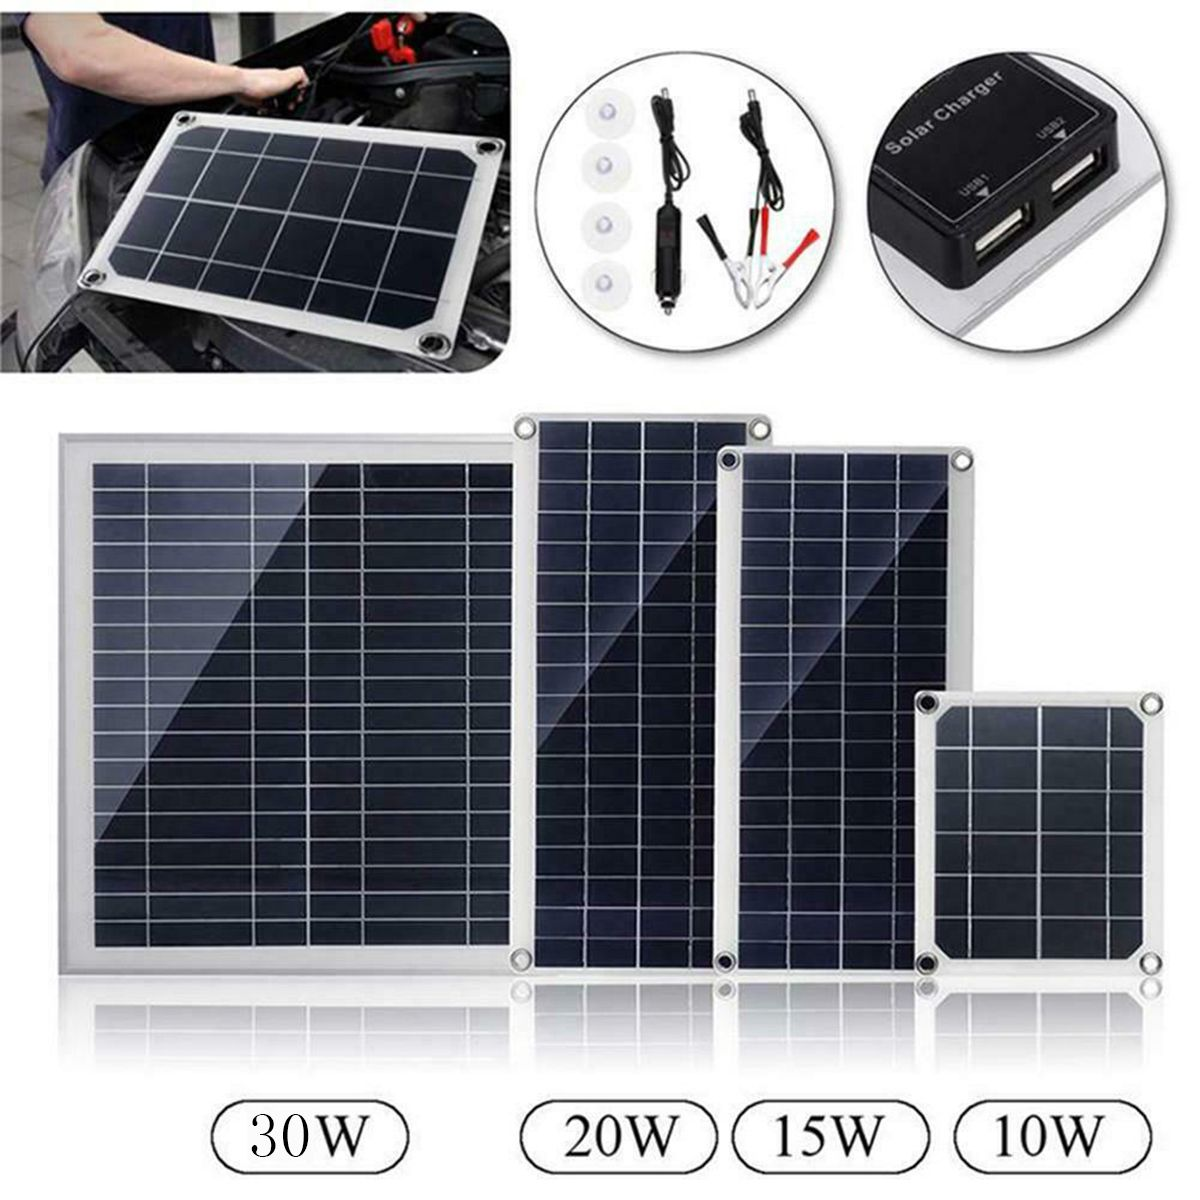 10w 15w 20w 30w 18v Dc Flexible Polycrystalline Solar Panel With Usb Connect Module Board From Electronic Components Supplies On Banggood Com Flexible Solar Panels Solar Charger Solar Panels